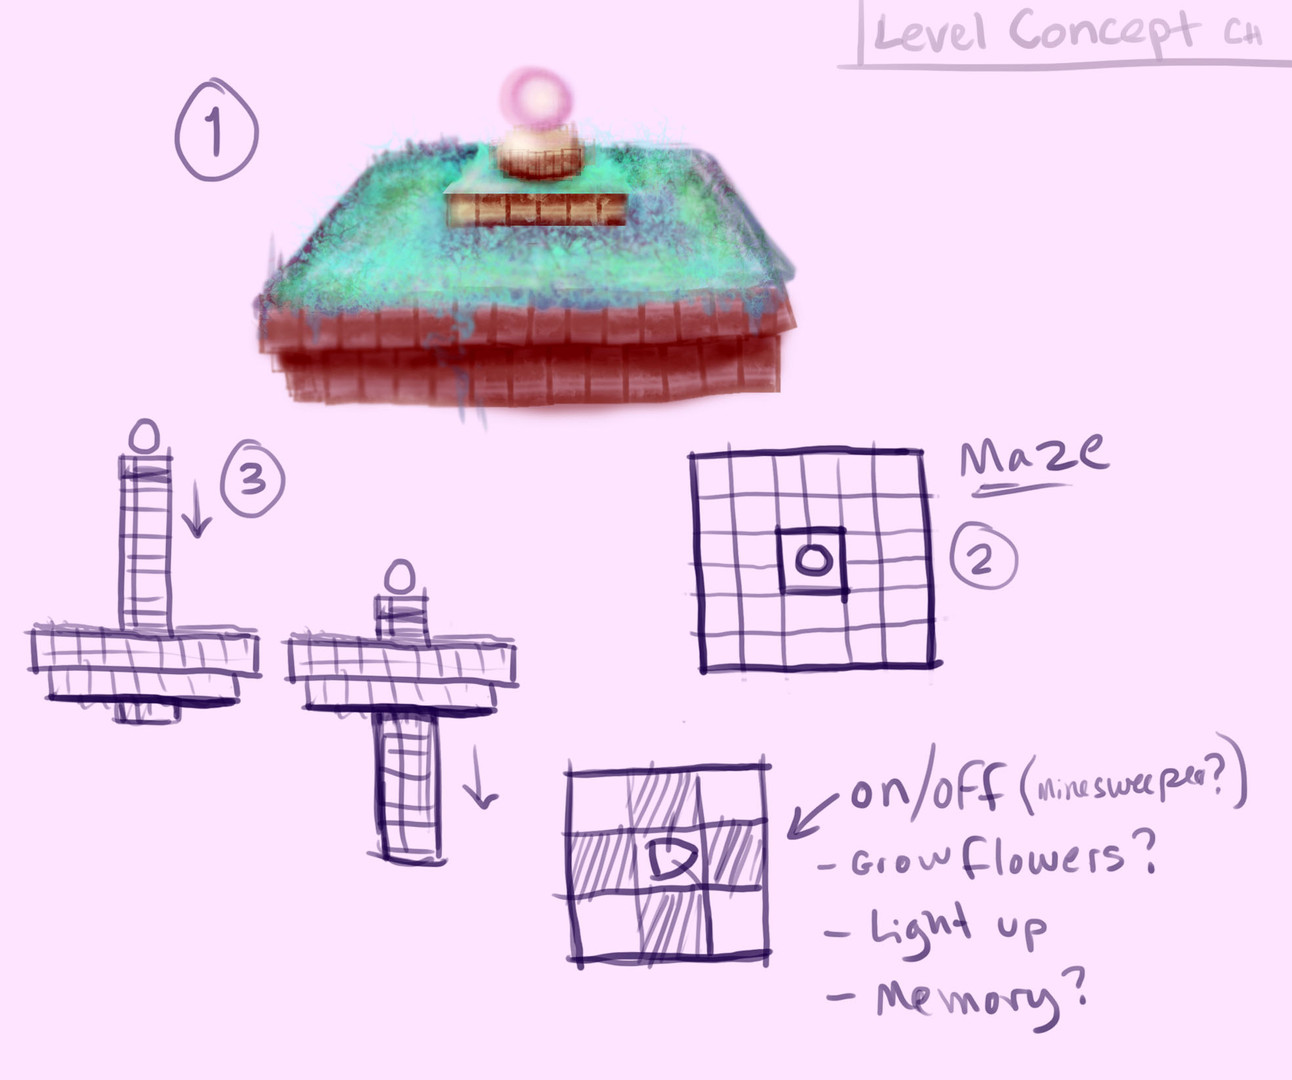 Flicker Fortress - Game Platform Design